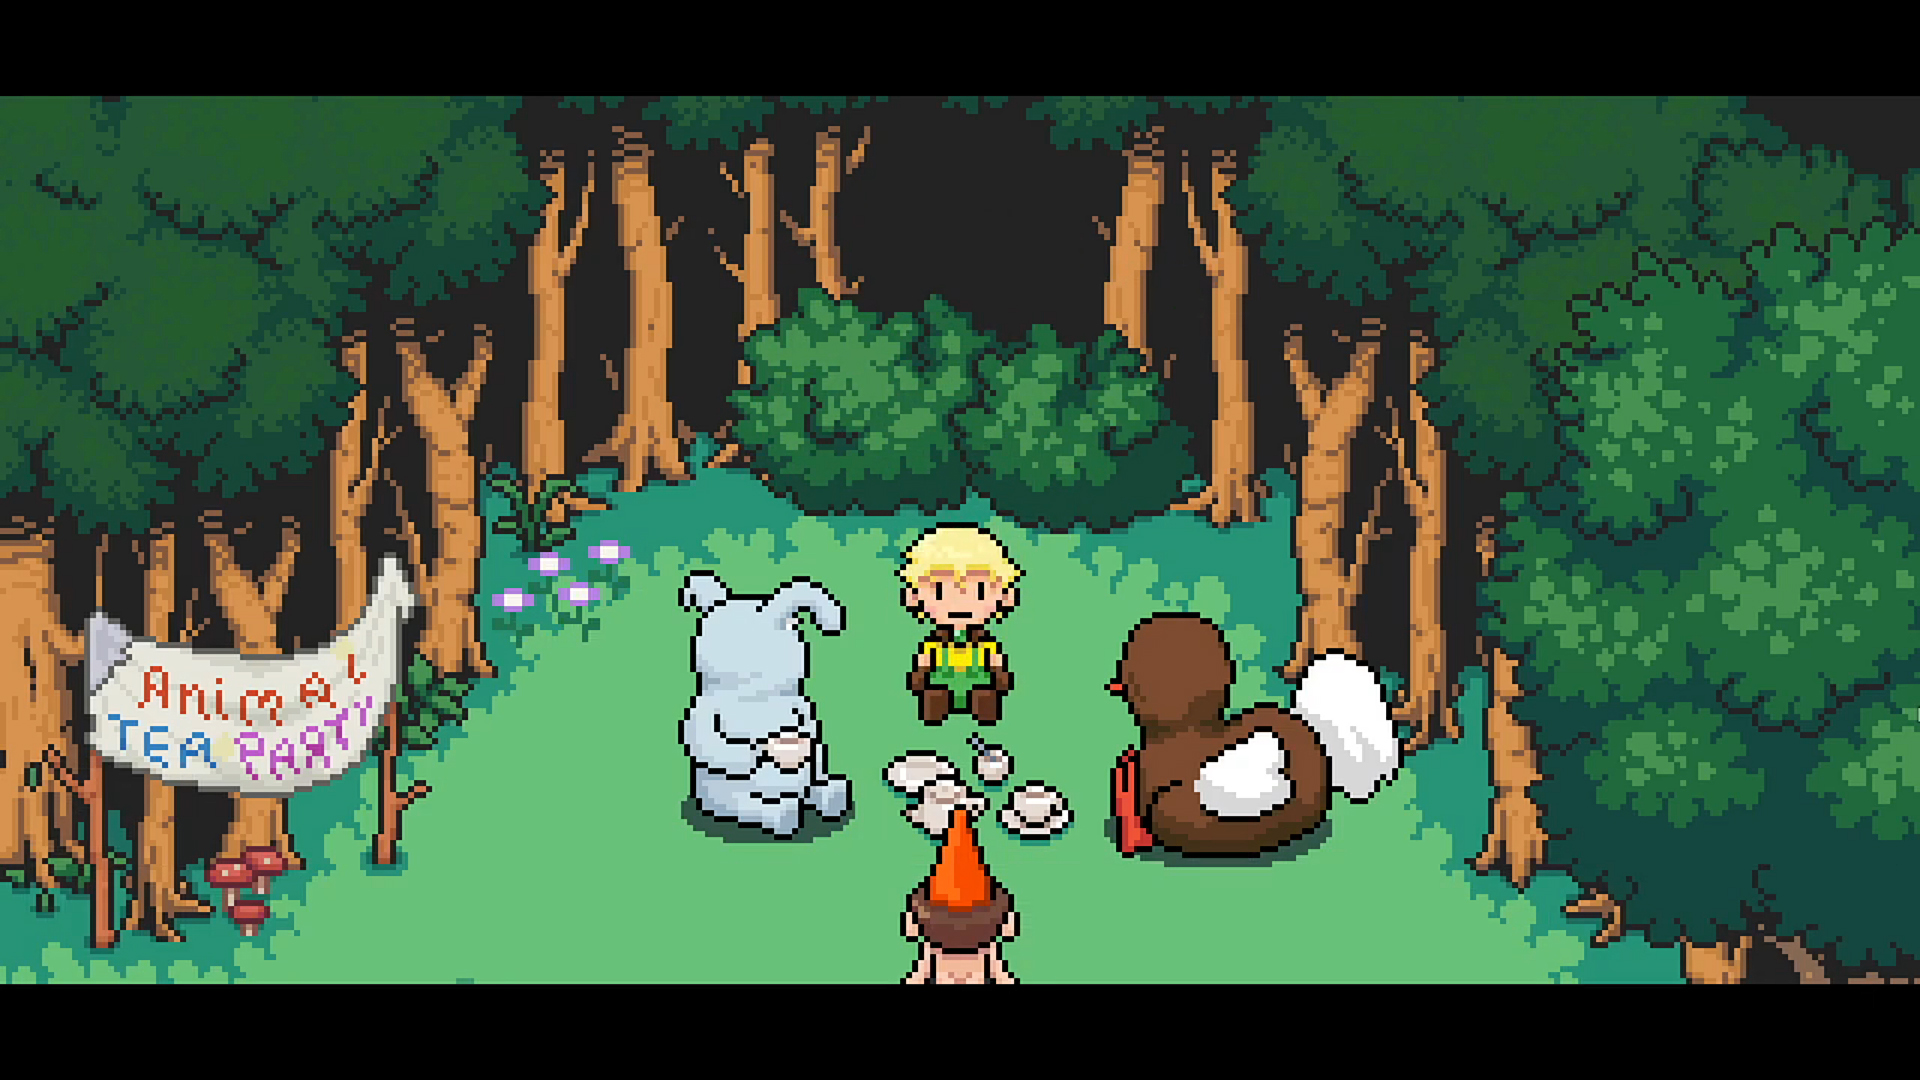 Oddventure screenshot of animal and human characters enjoying tea in a forest.